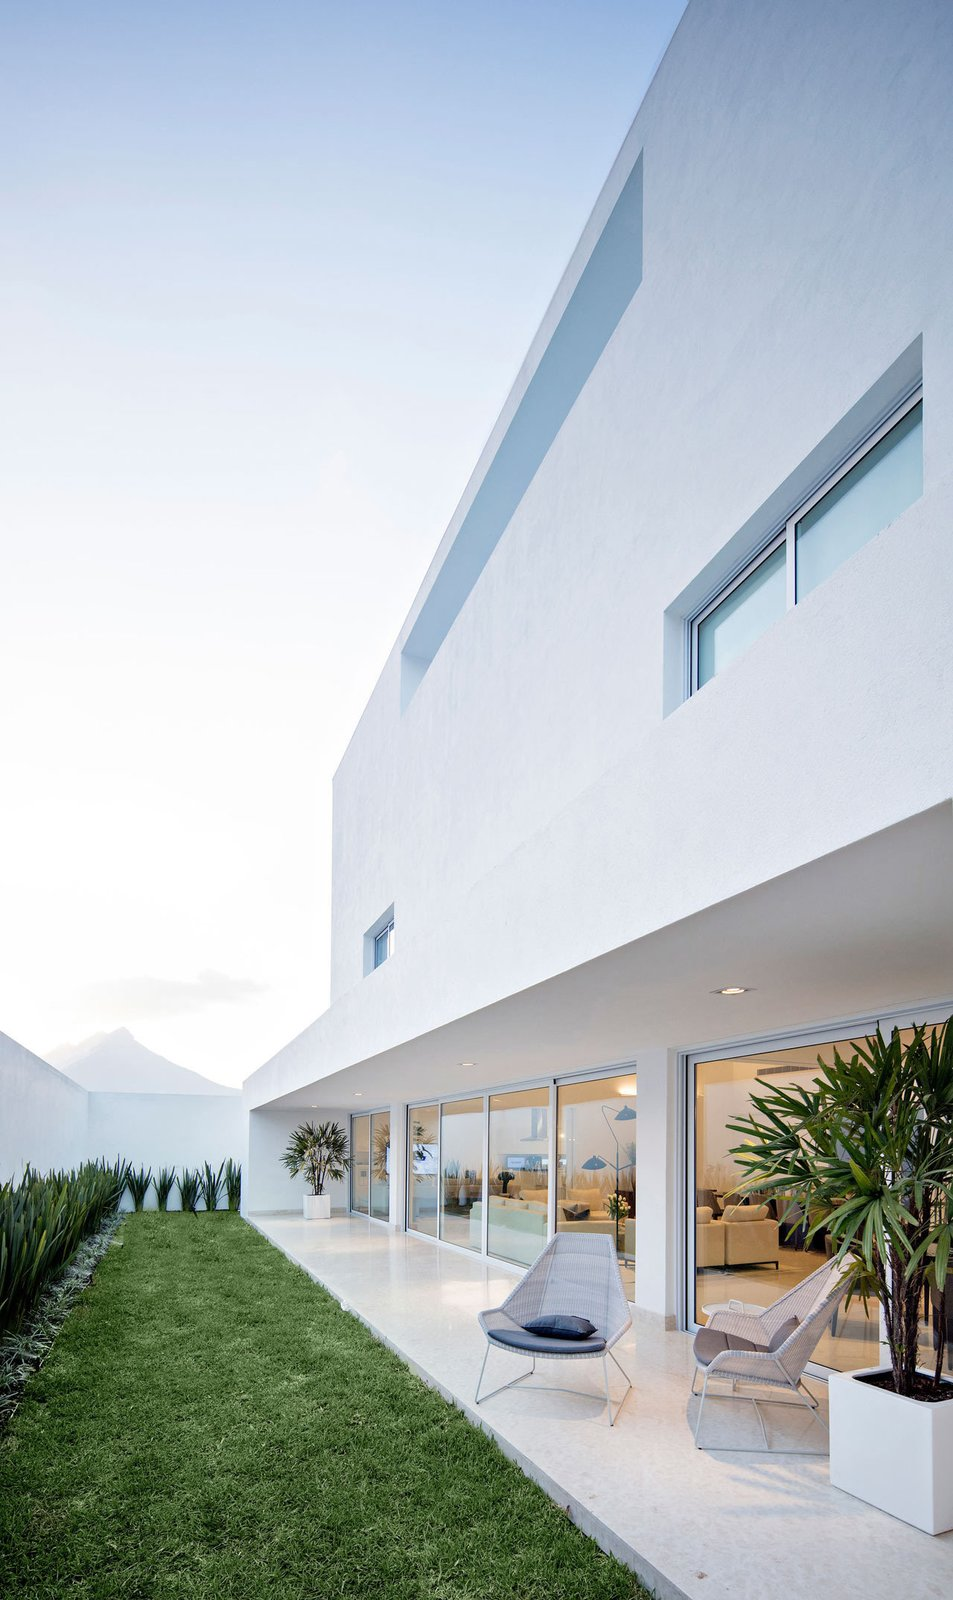 Photo 5 of 23 in Domus Aurea: A Modern, Mexican Residence with Mountain Views